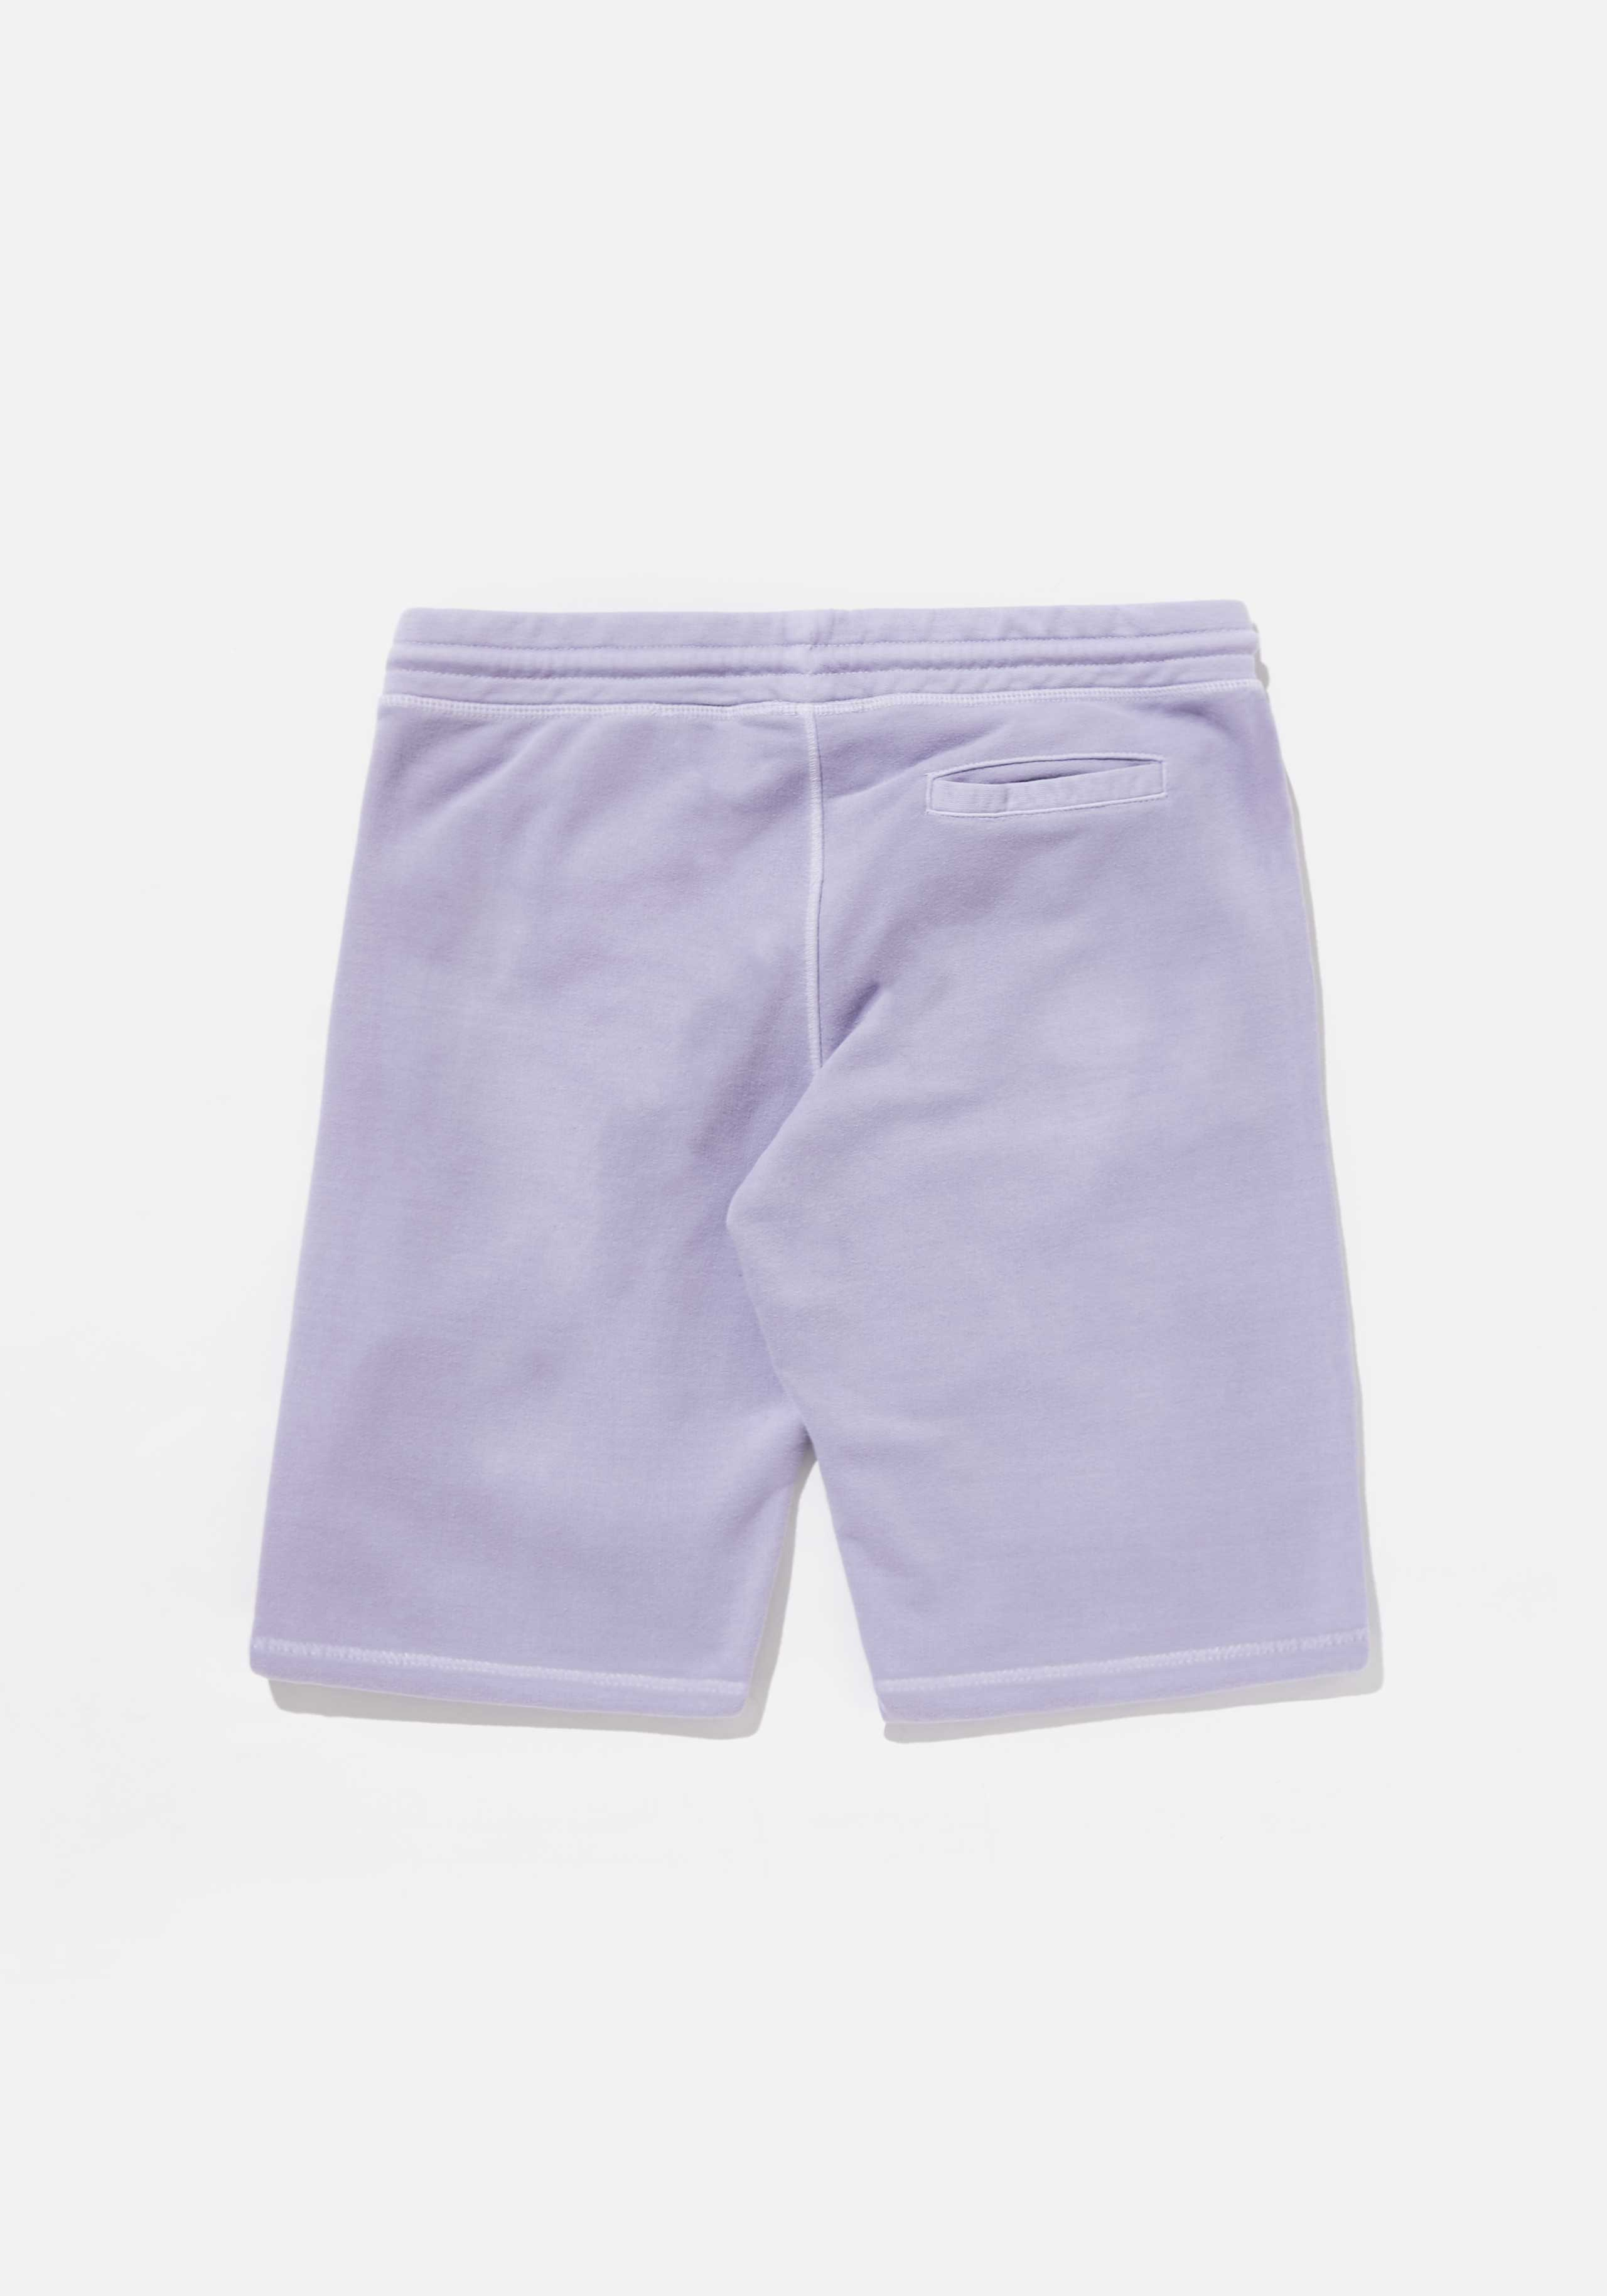 mki pigment dyed shorts 2